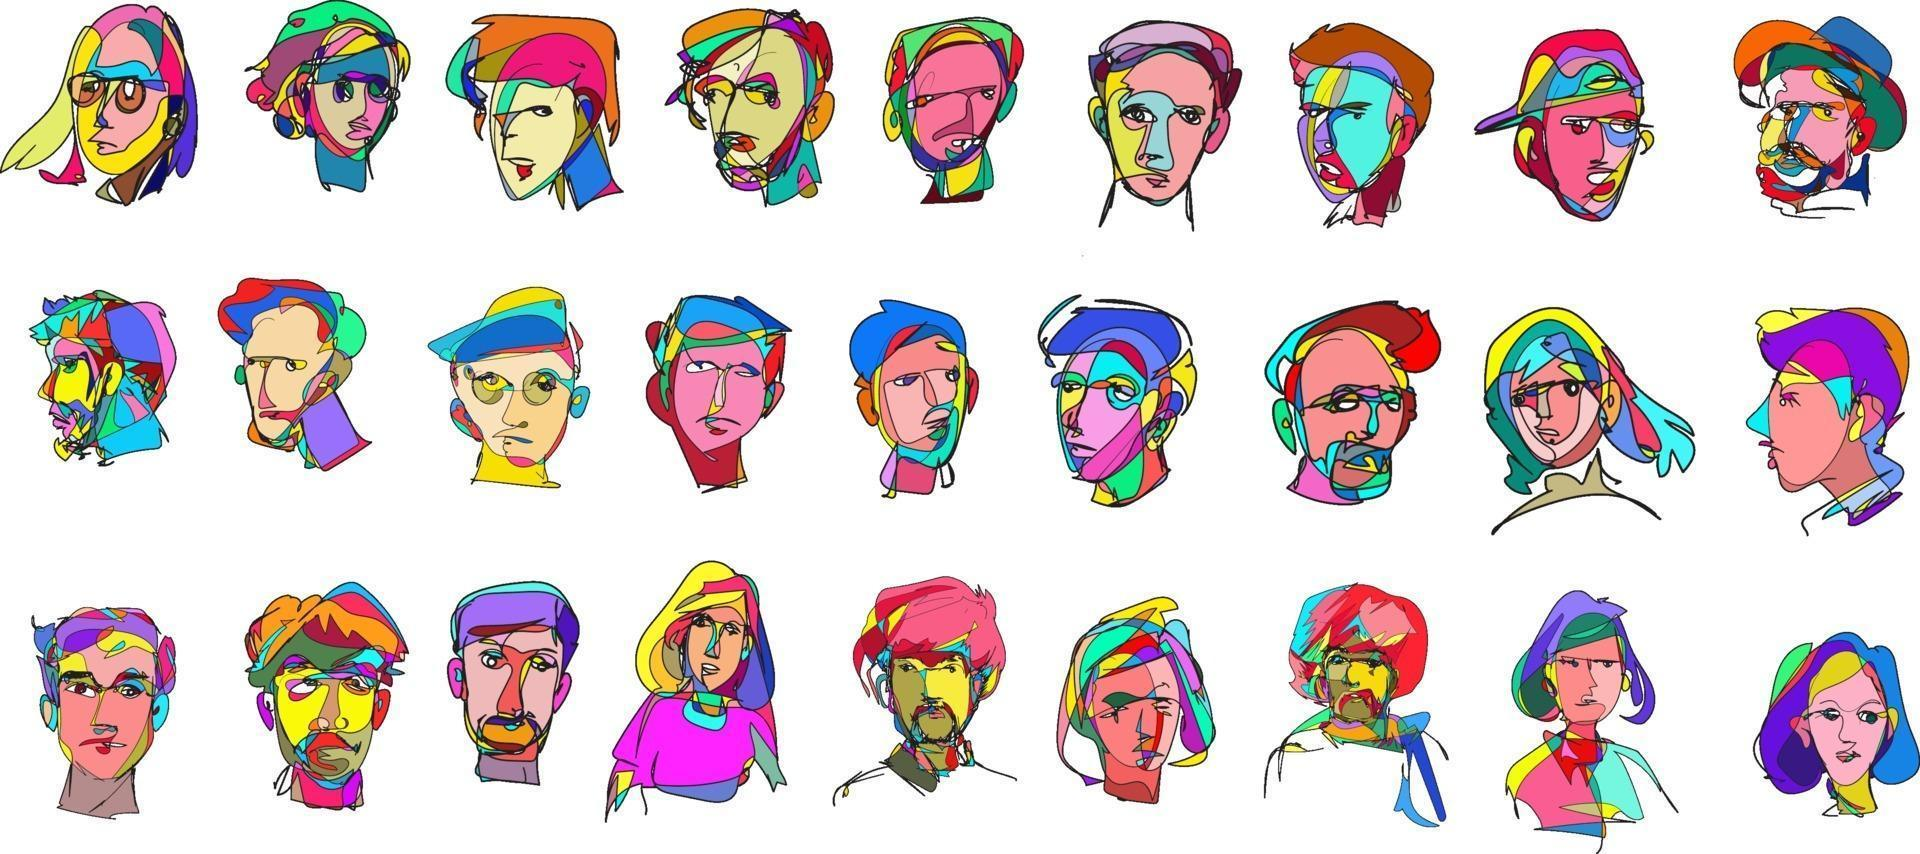 Illustration of colorful surreal abstract human heads in continuous line art drawing style vector